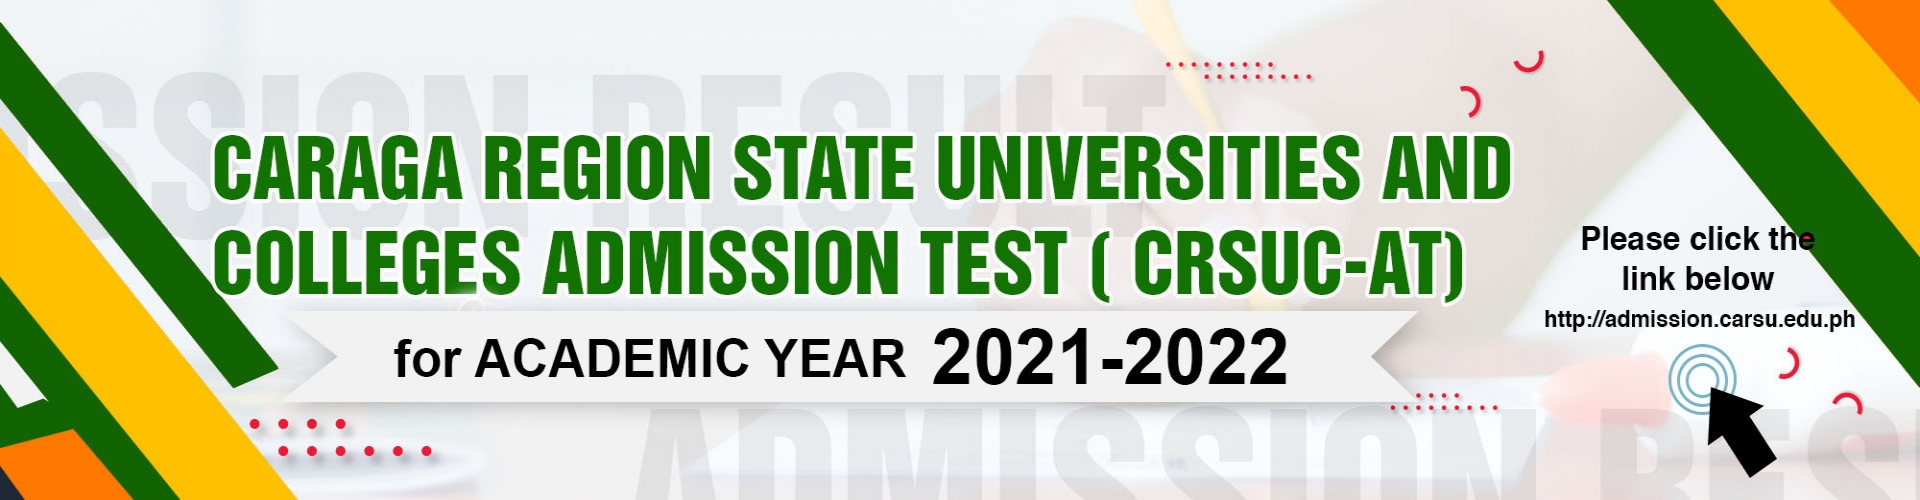 Caraga Region State Universities and Colleges Admission Test (CRSUC-AT)